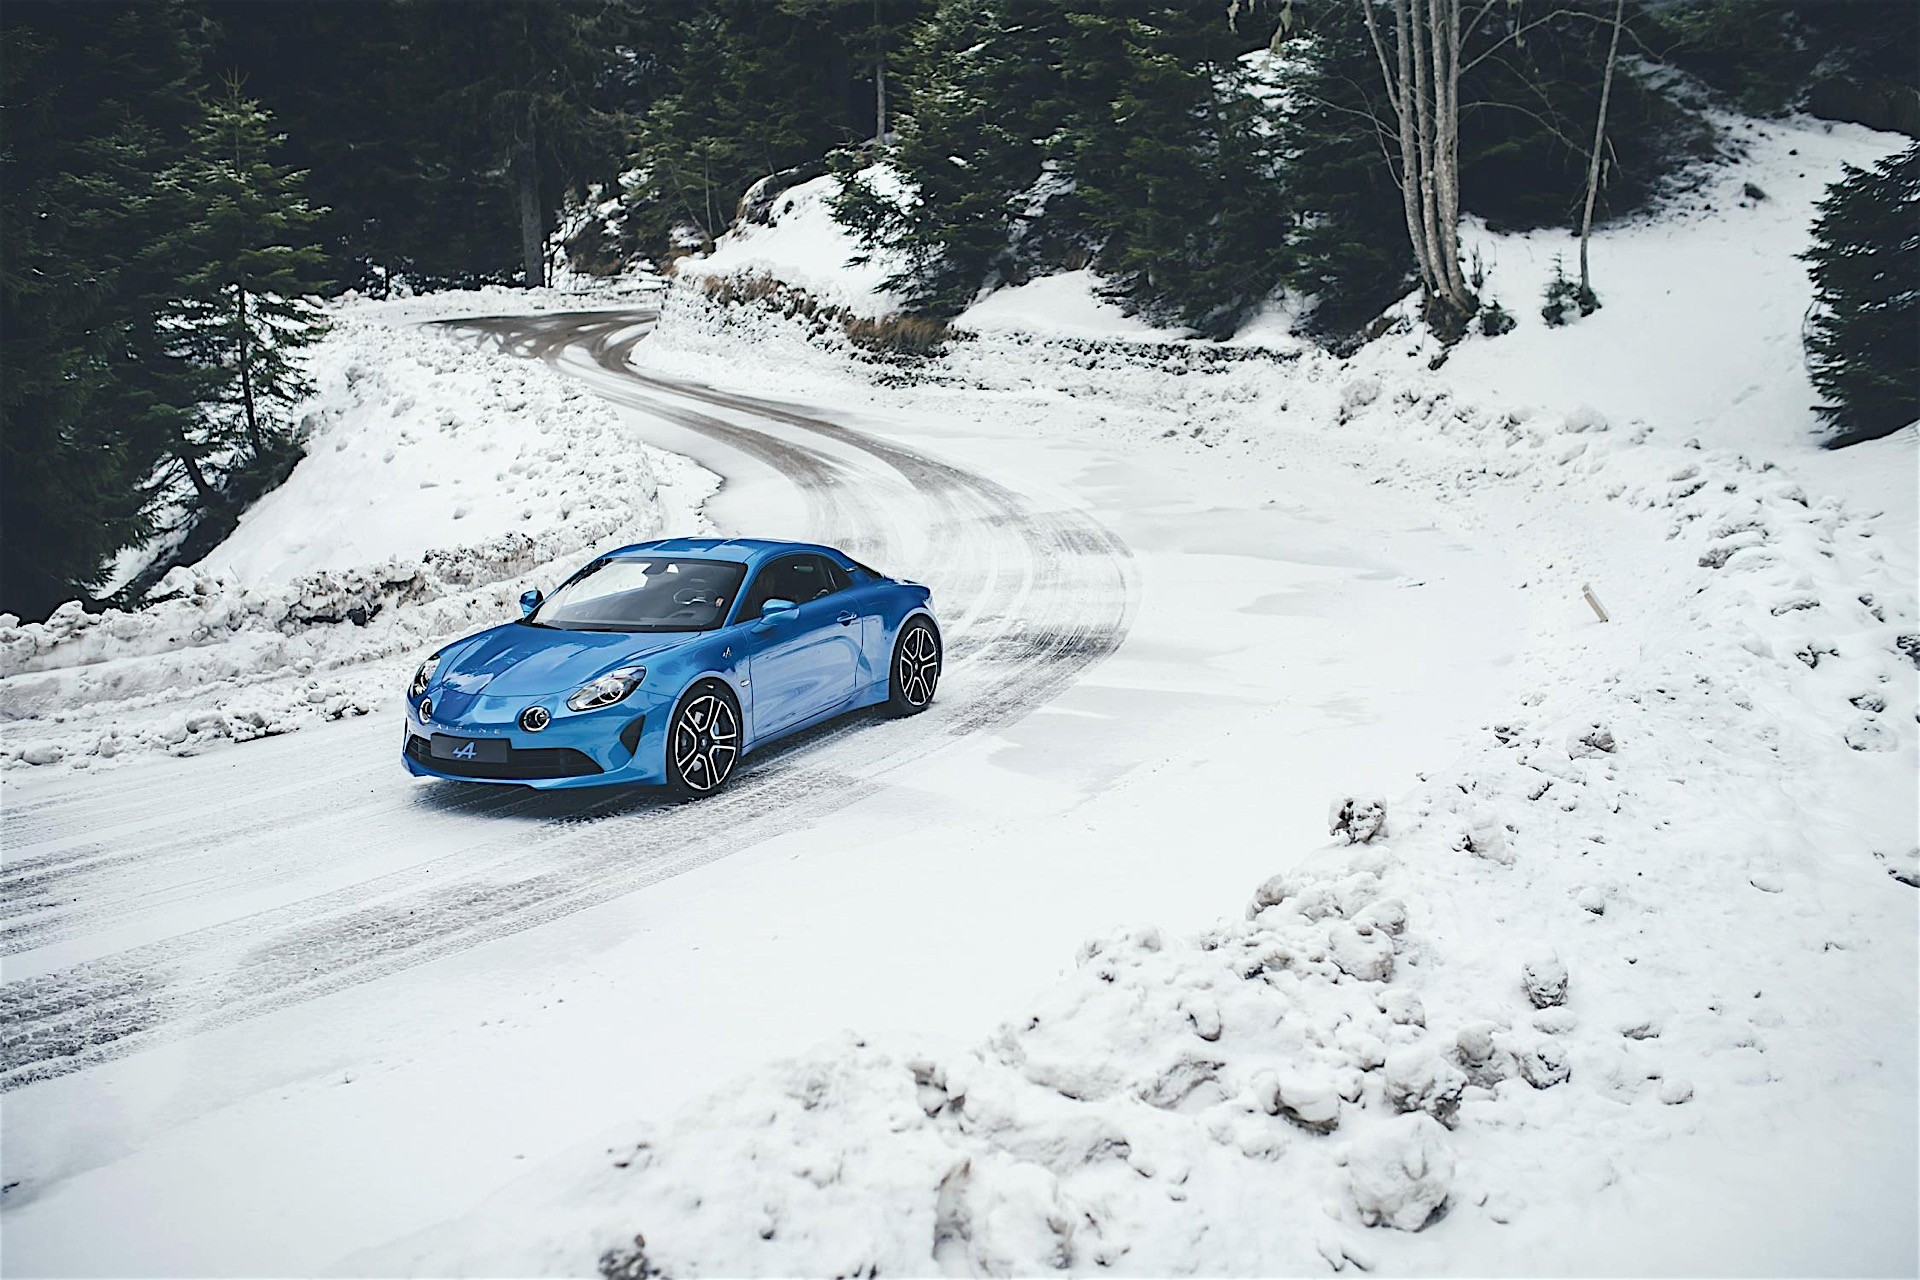 Sneak peek at the new French sports car brand in Singapore, Alpine